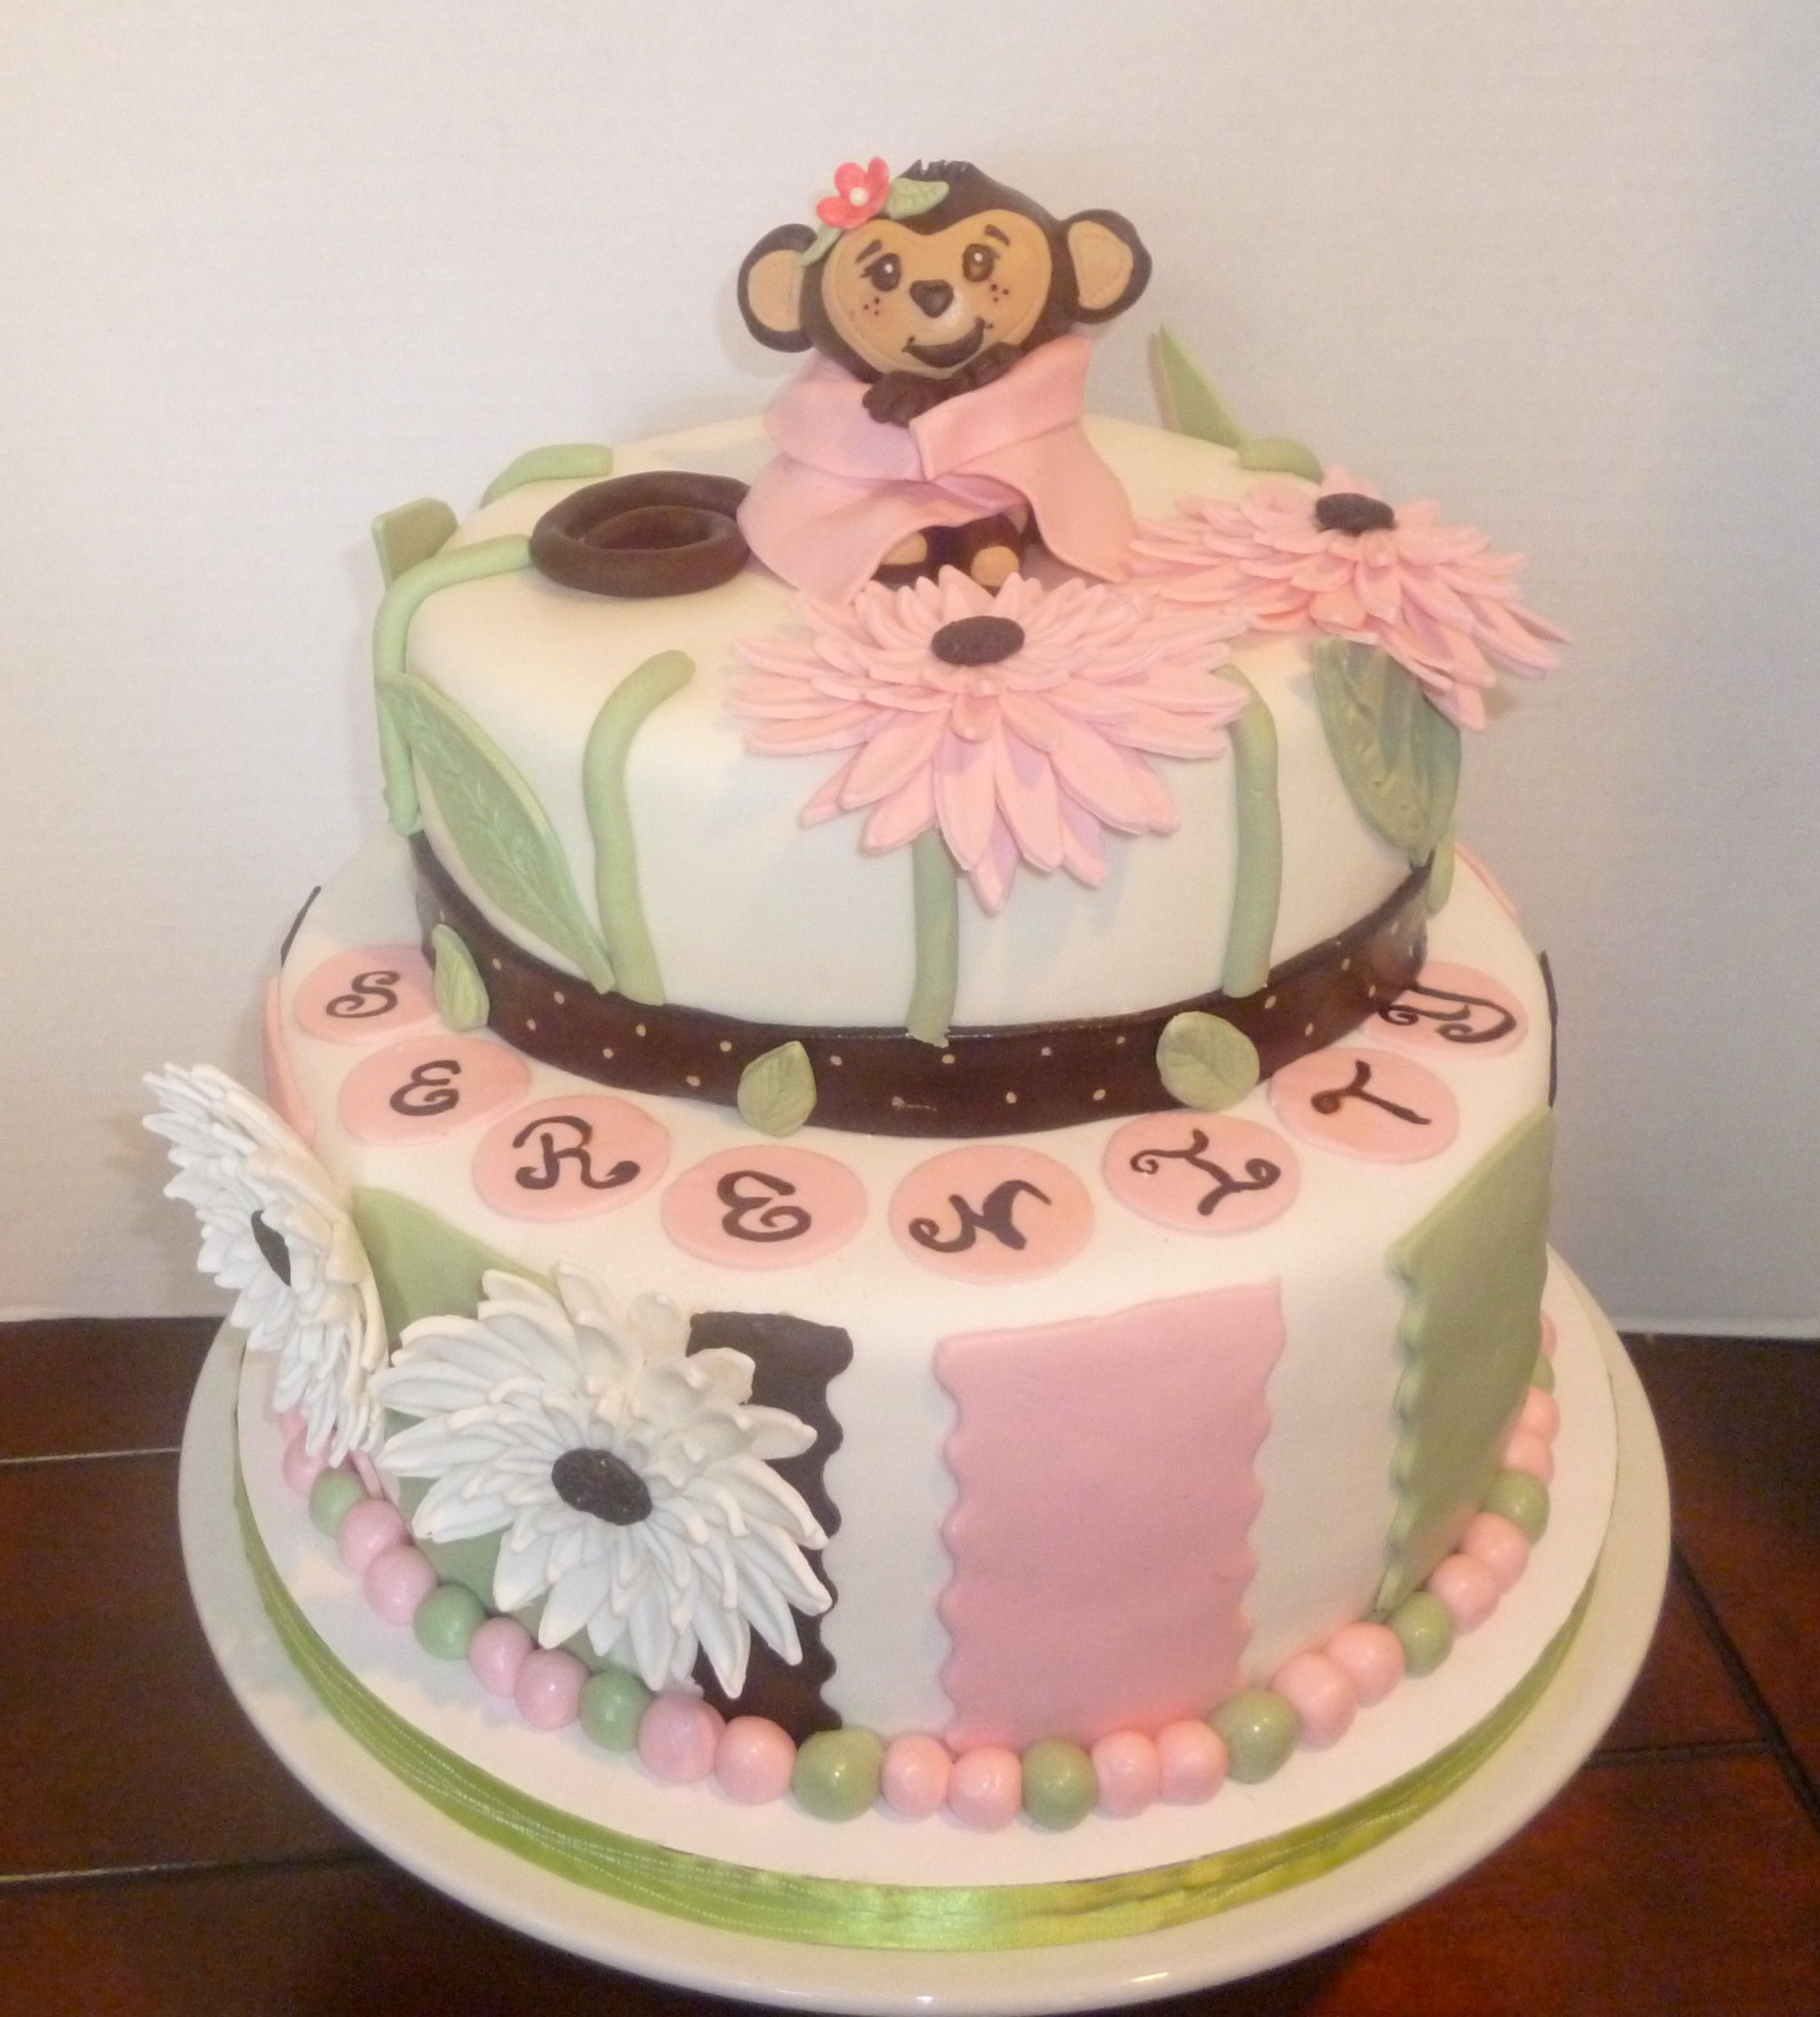 Baby girl monkey themed baby shower cake cakes pinterest - Baby shower monkey theme cakes ...